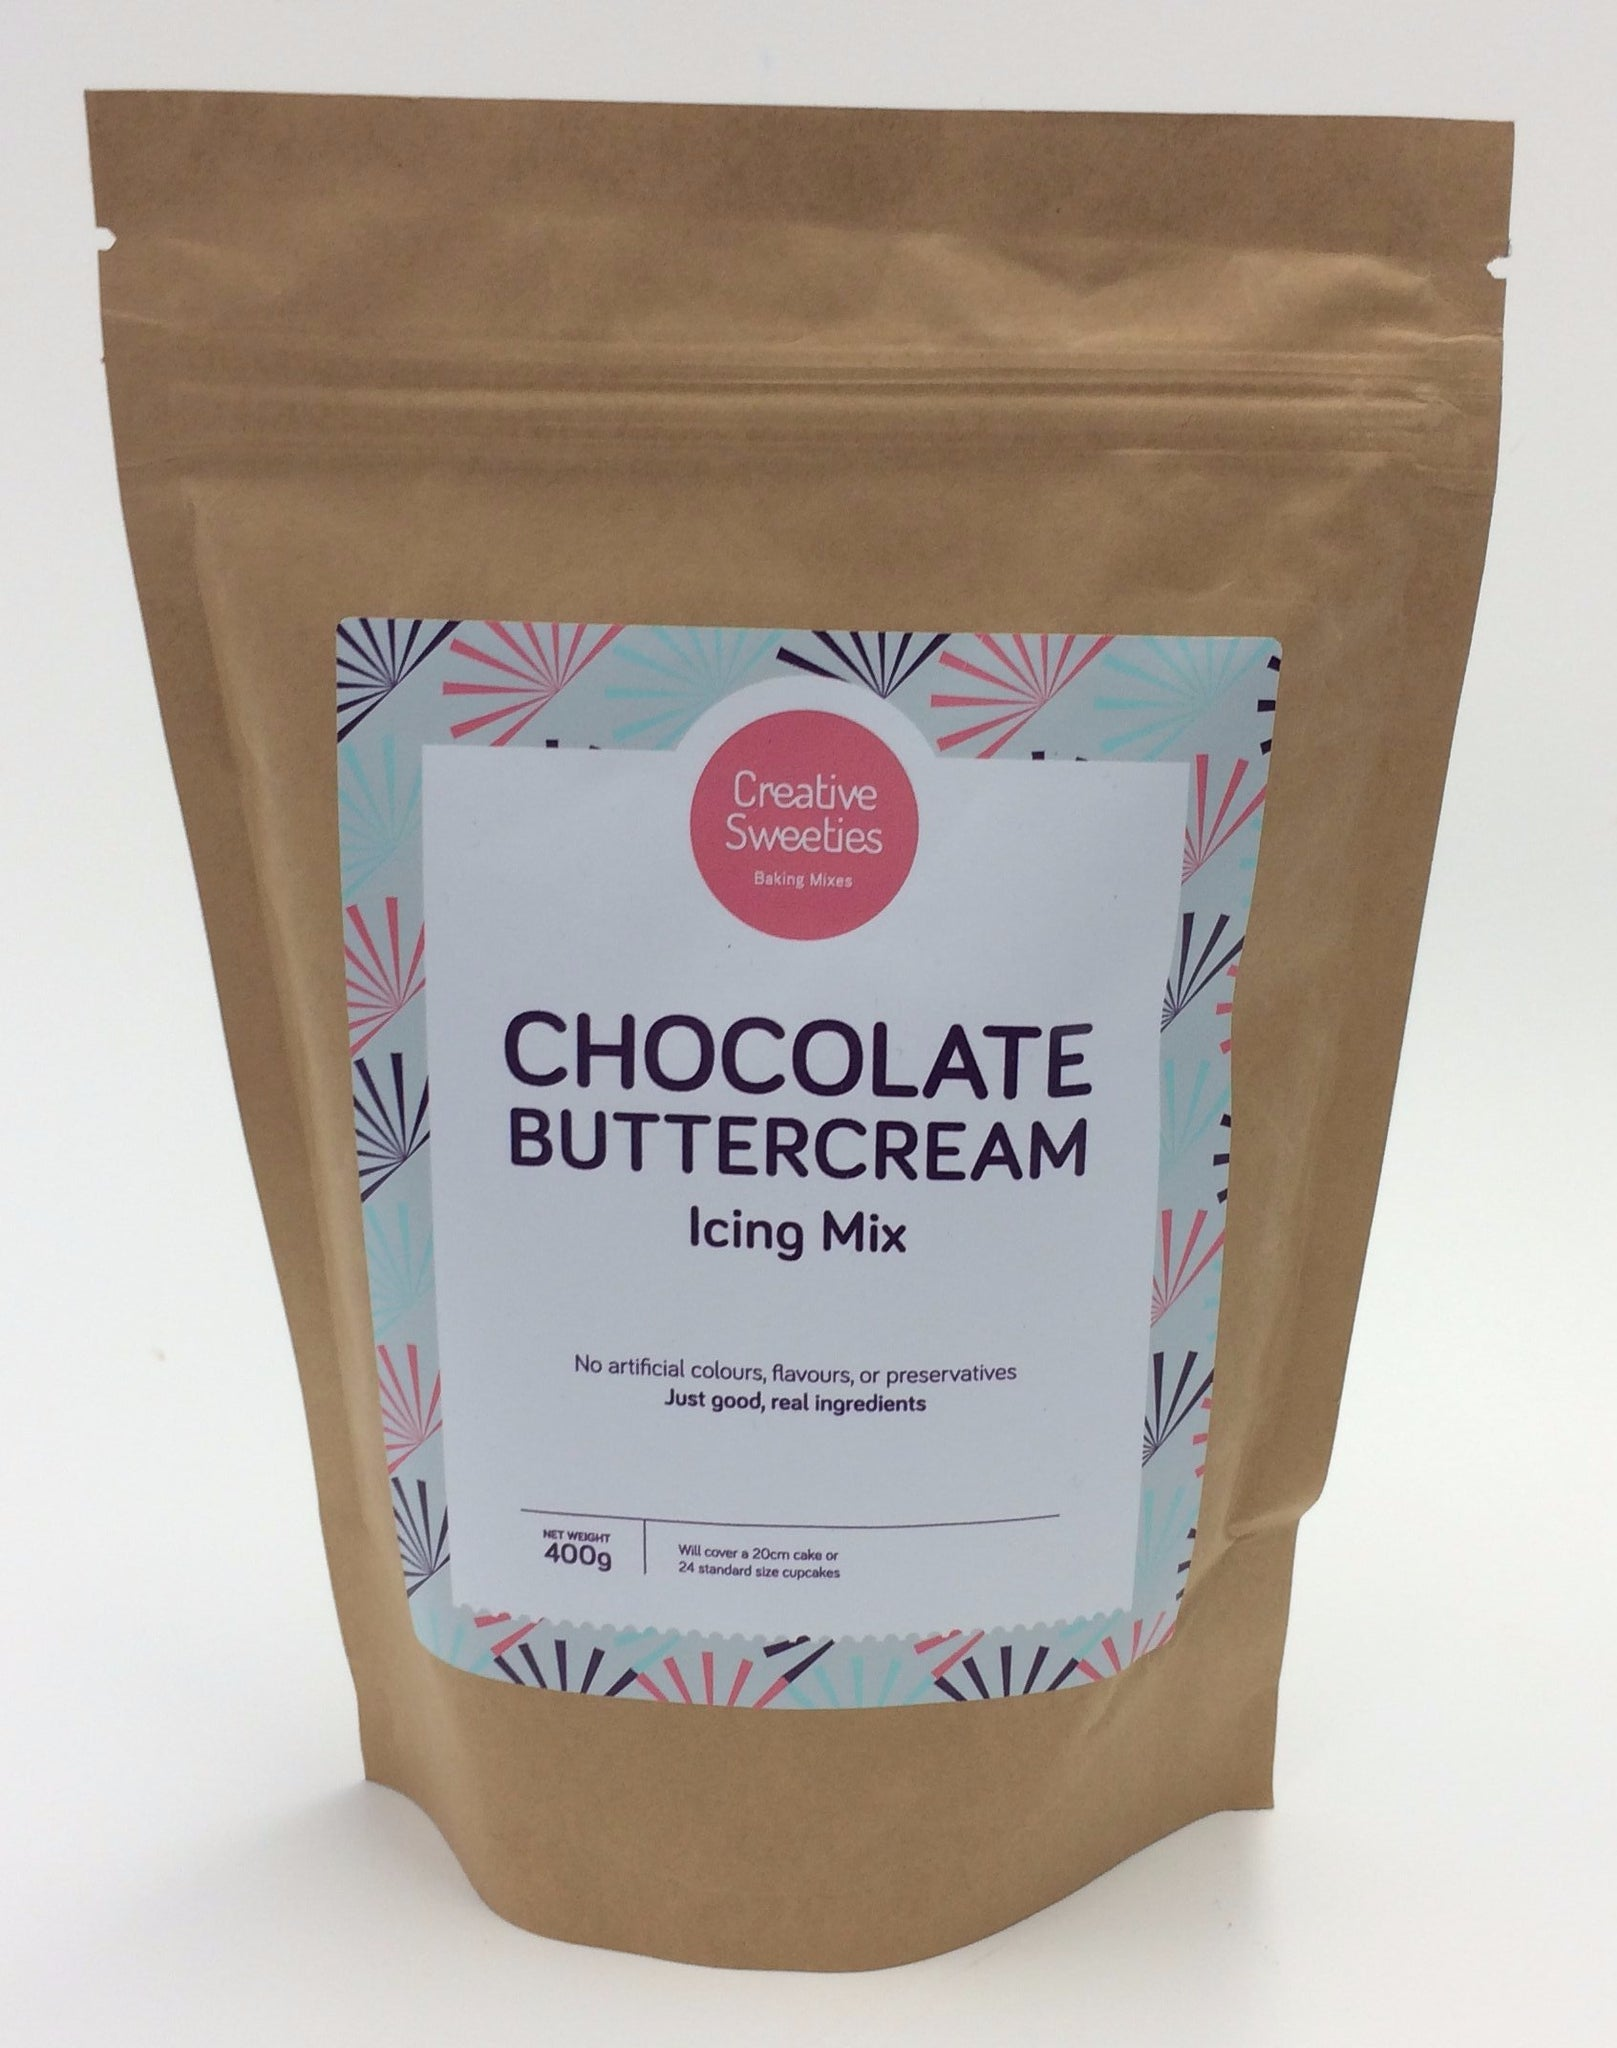 Creative Sweeties Chocolate Buttercream Mix